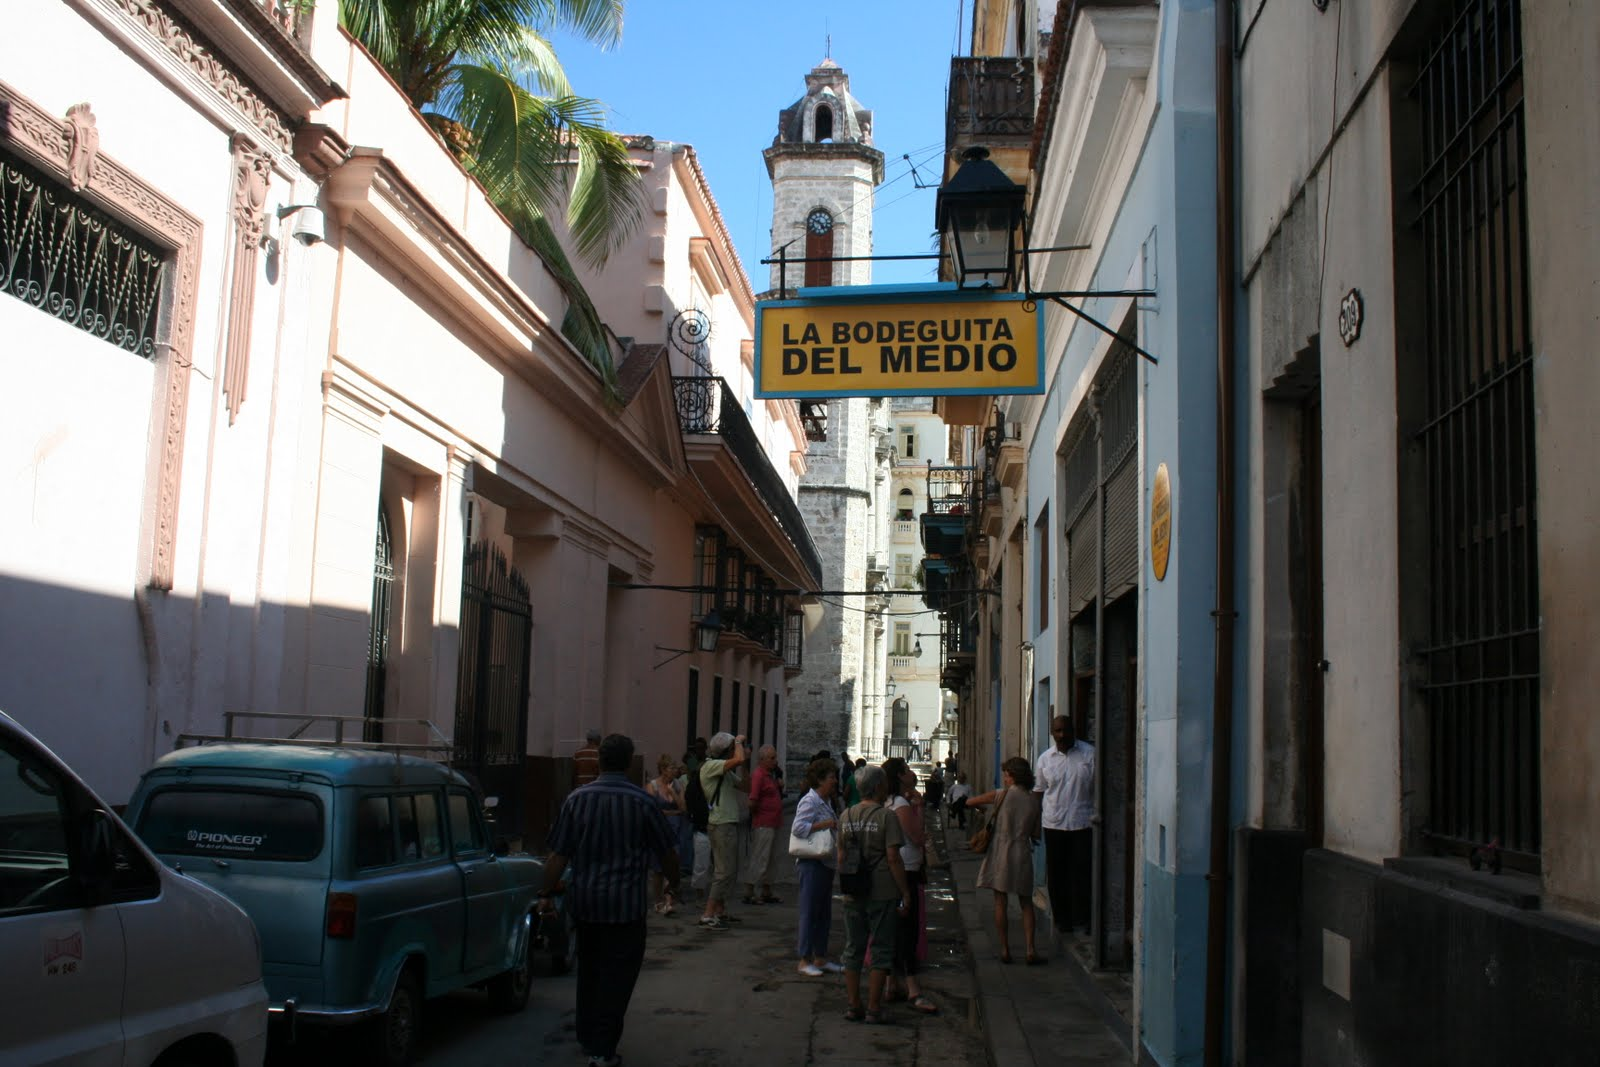 Tourists fill the famous La Bodeguita del bet at home Sport android Alternative bet at home Medio bar where U.S. author ...